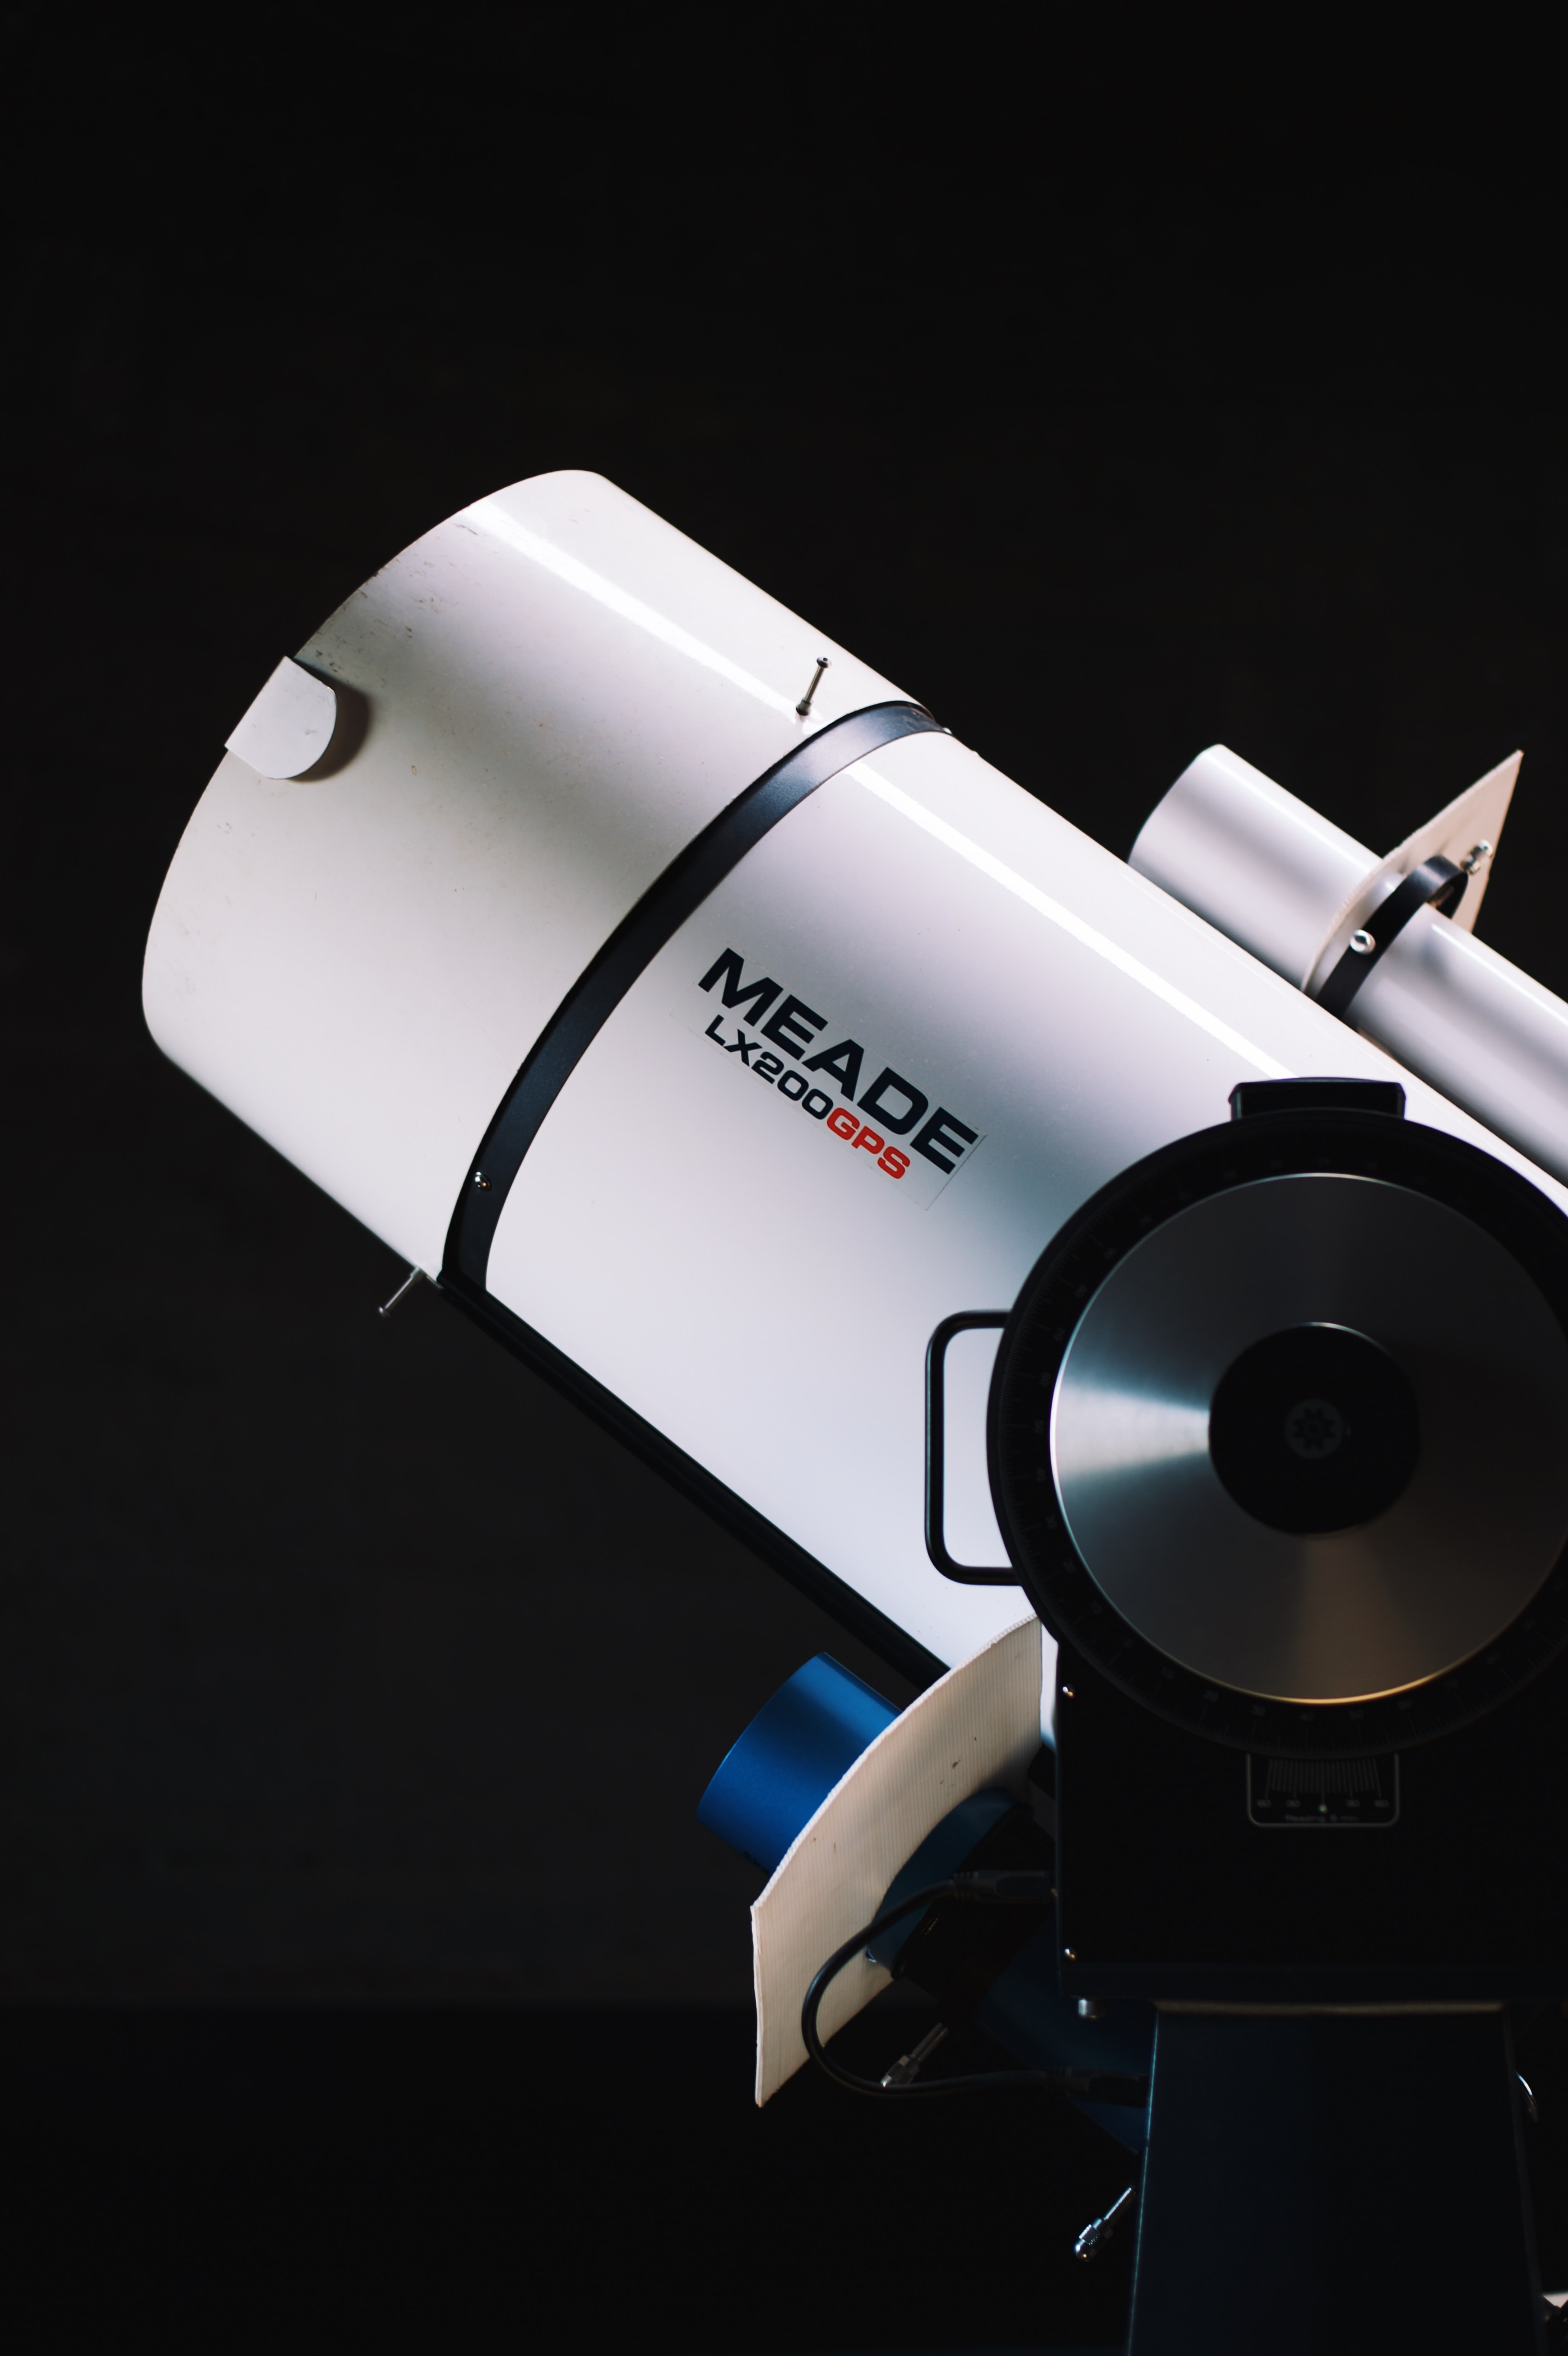 white Meade LX200GPS telescope beside black wall